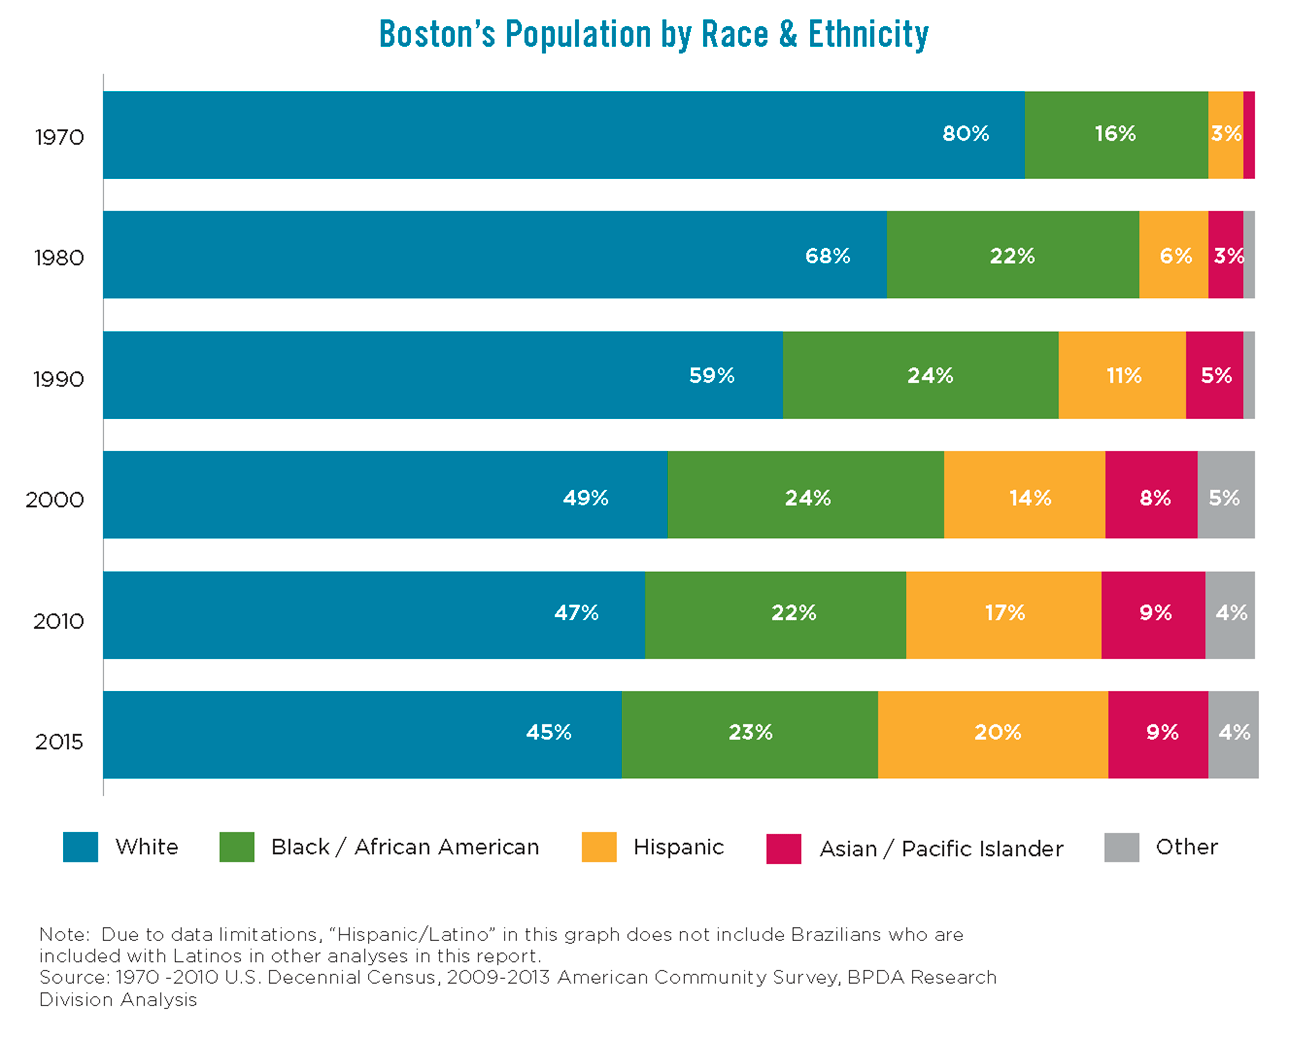 Boston's Population by Race & Ethnicity